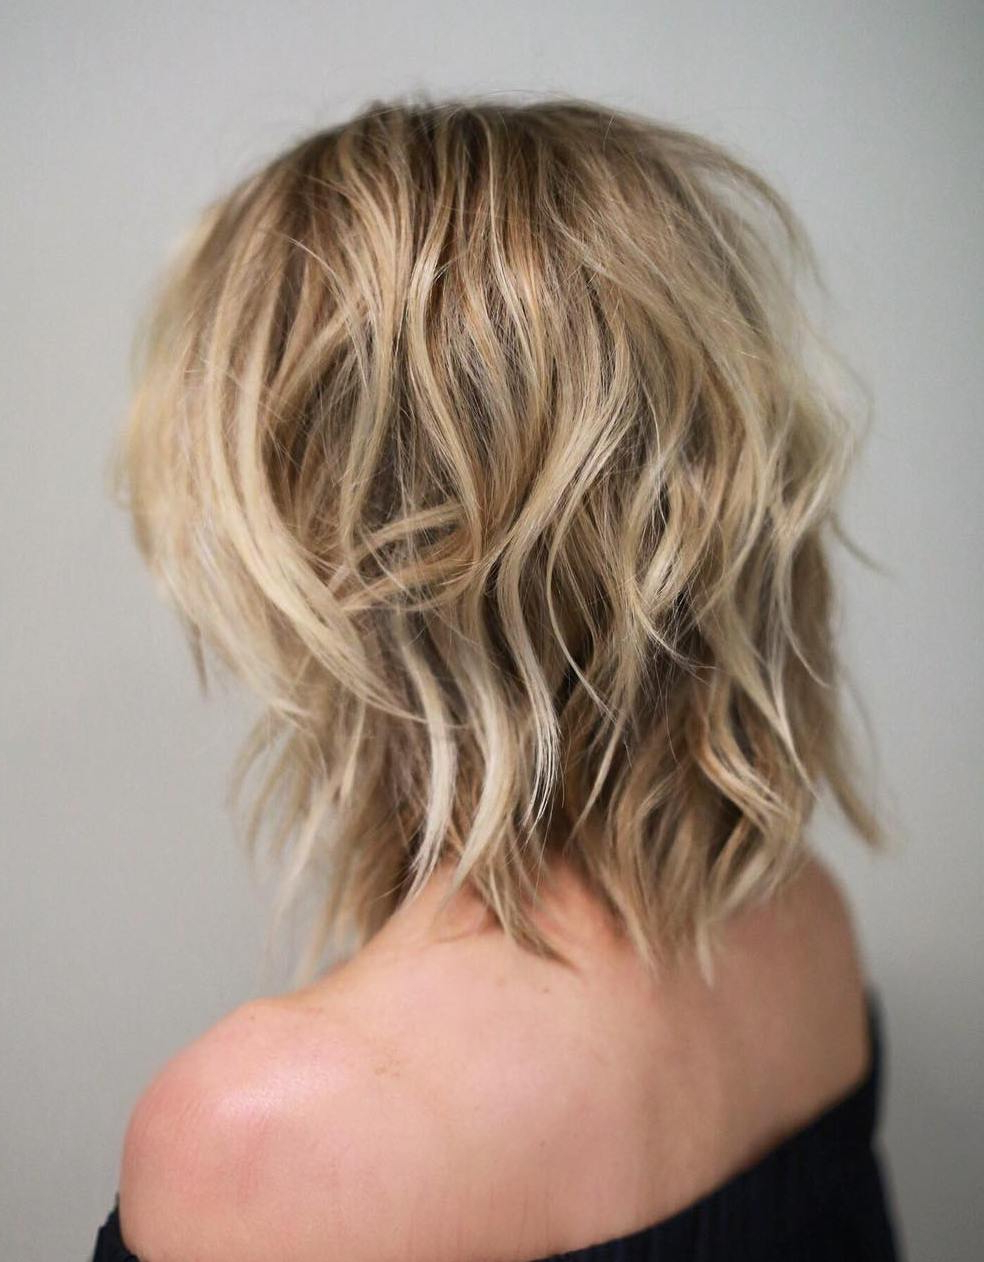 Shag Haircuts And Hairstyles In 2019 — Therighthairstyles For Famous Balayage Hairstyles For Shoulder Length Shag (View 11 of 20)